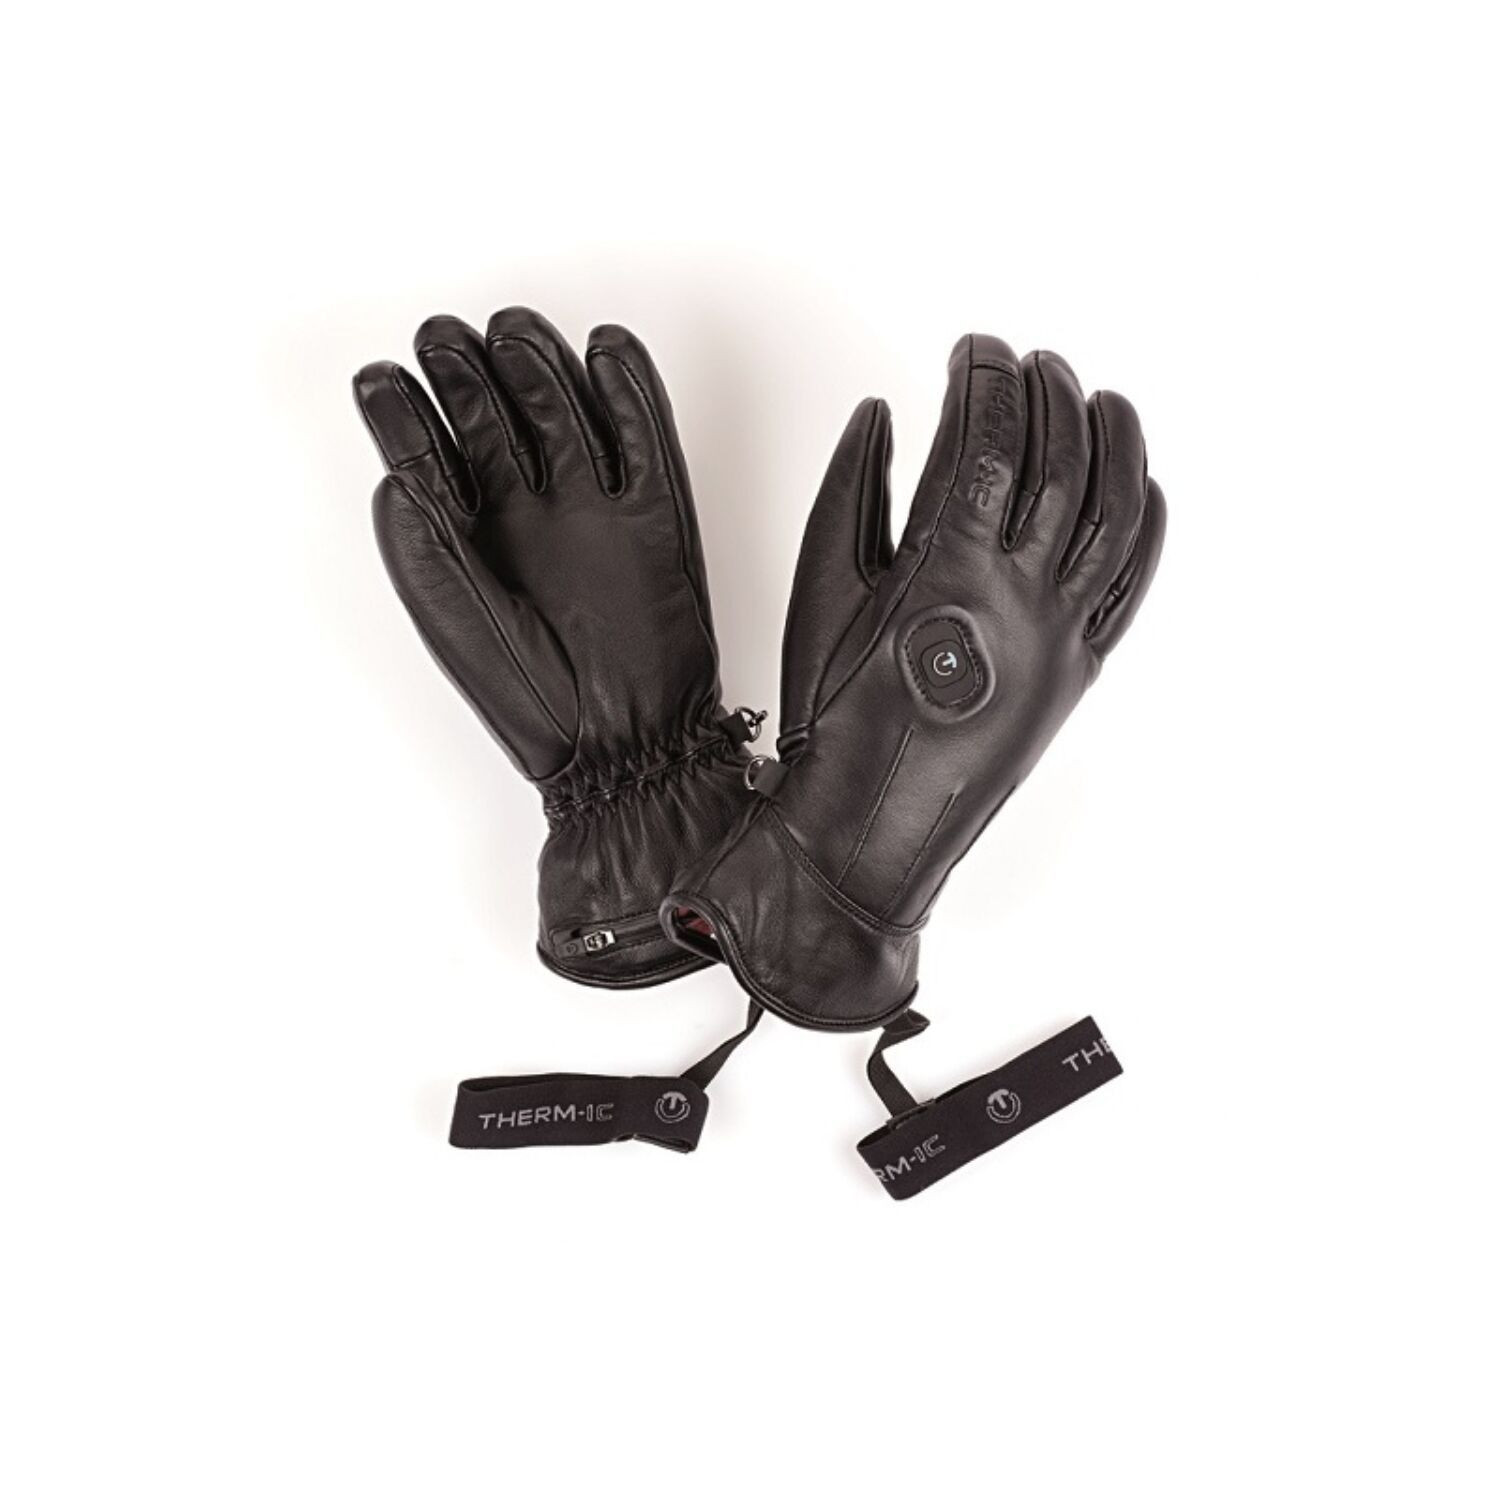 Vyhrievané rukavice THERM-IC PowerGloves Leather Ladies Black Čierna L